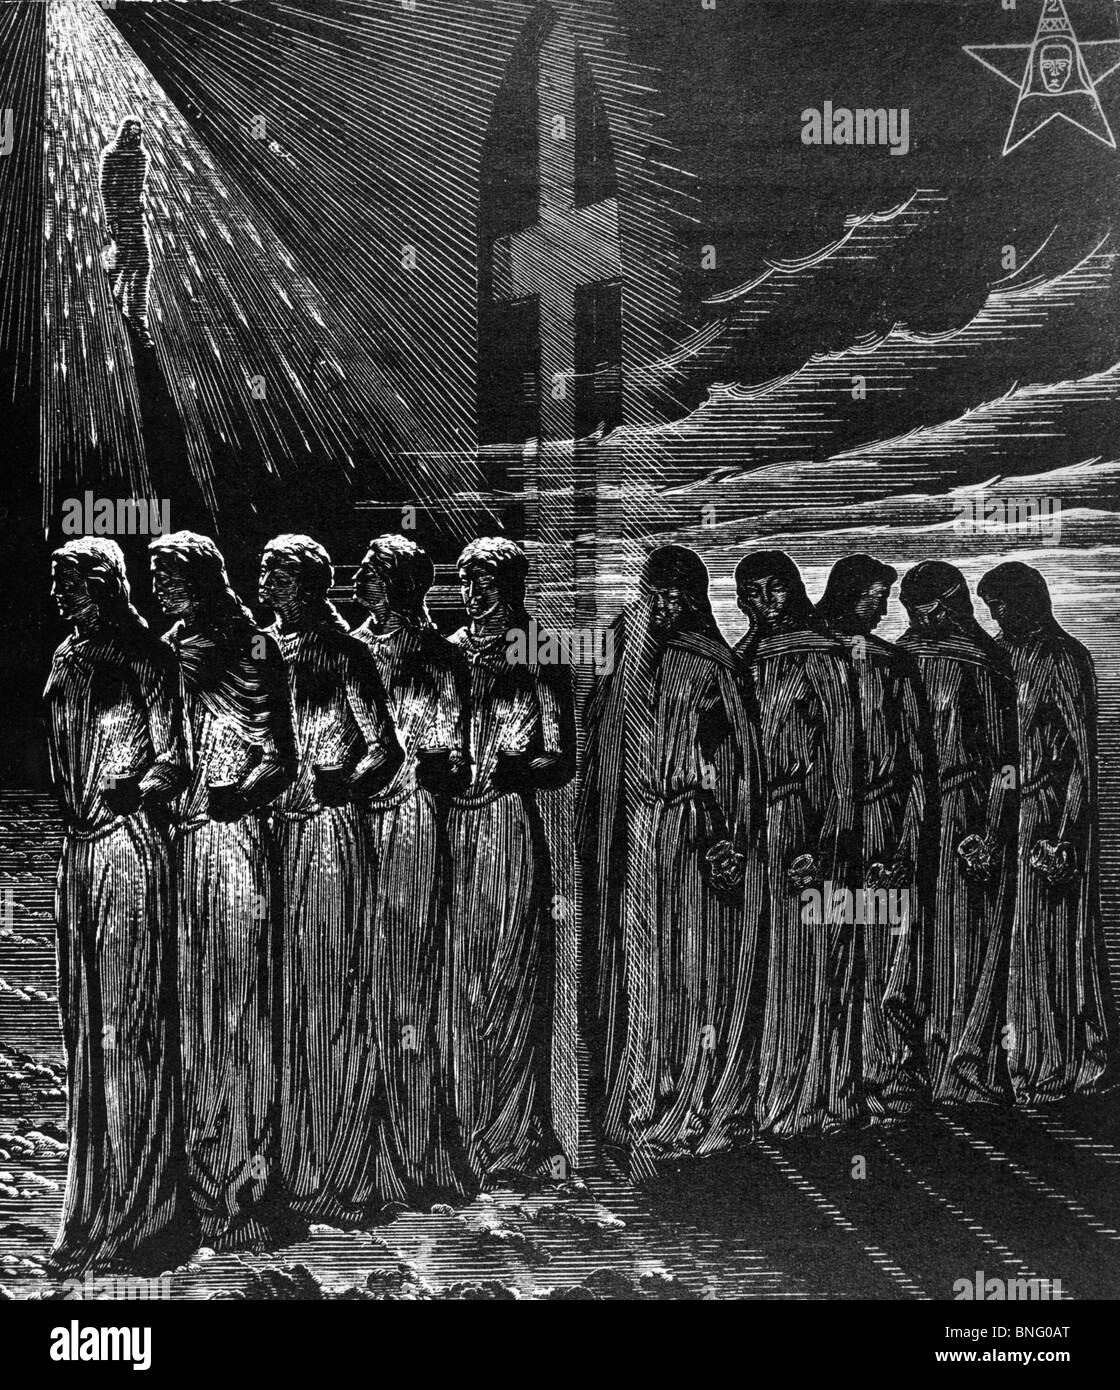 The Parable of the Ten Virgins by Victor Delhez, print - Stock Image